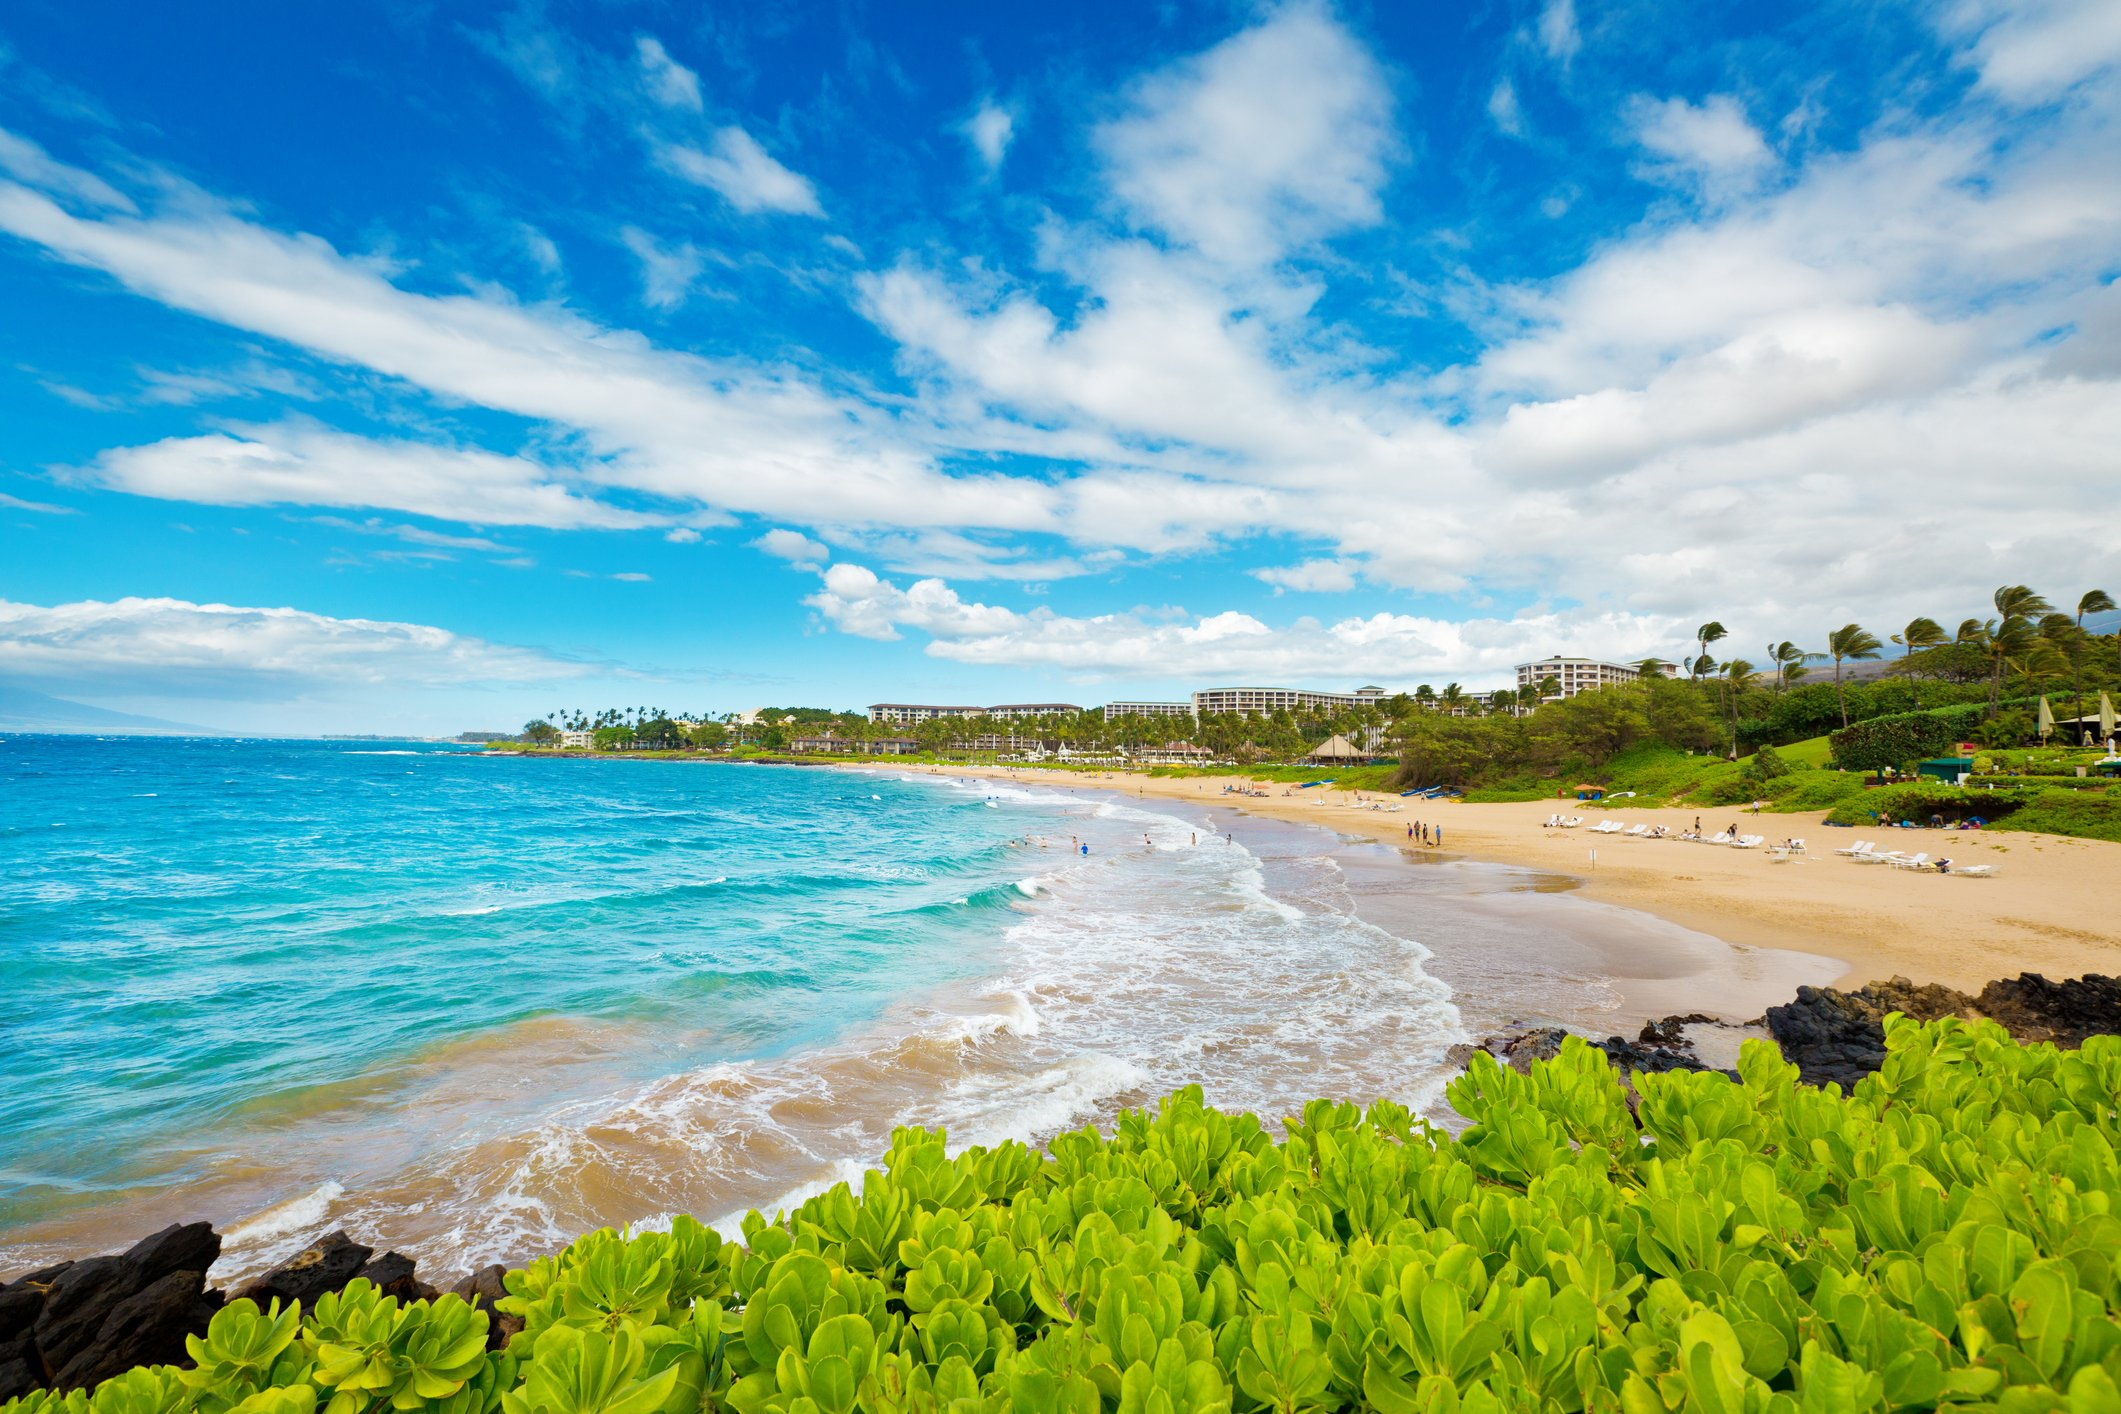 The best things to do in Wailea, Maui range from free beaches to fun tours. Here are my top picks for your vacation or day trip!